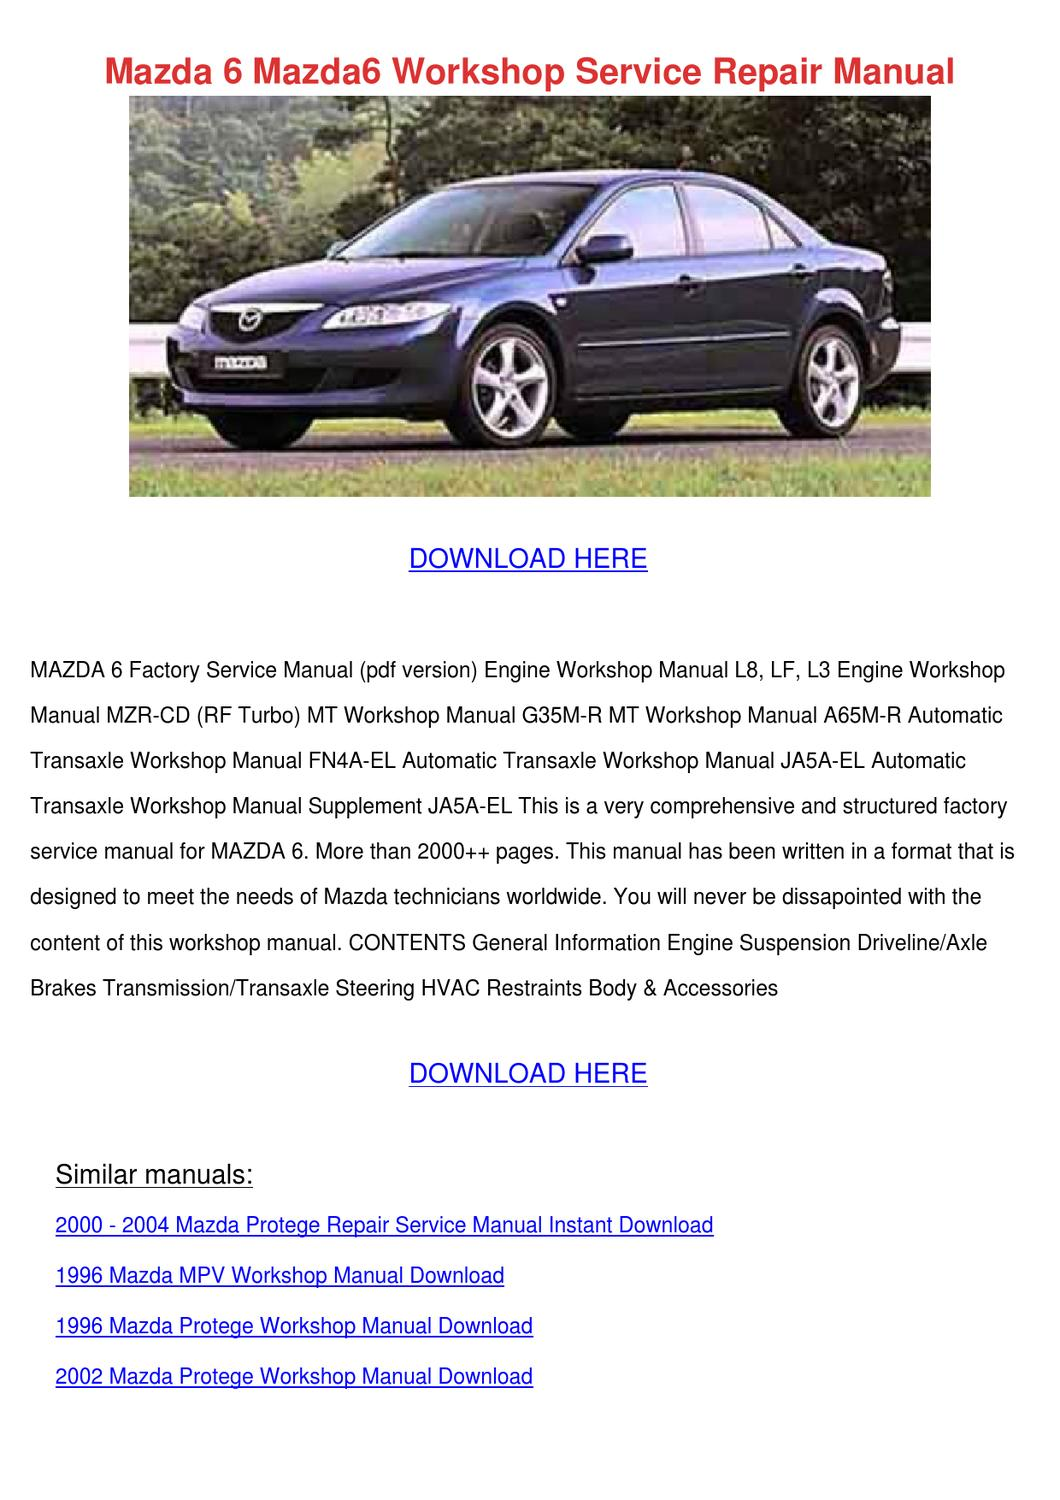 2009 mazda mazda6 service manual download mazda6 2002. Black Bedroom Furniture Sets. Home Design Ideas